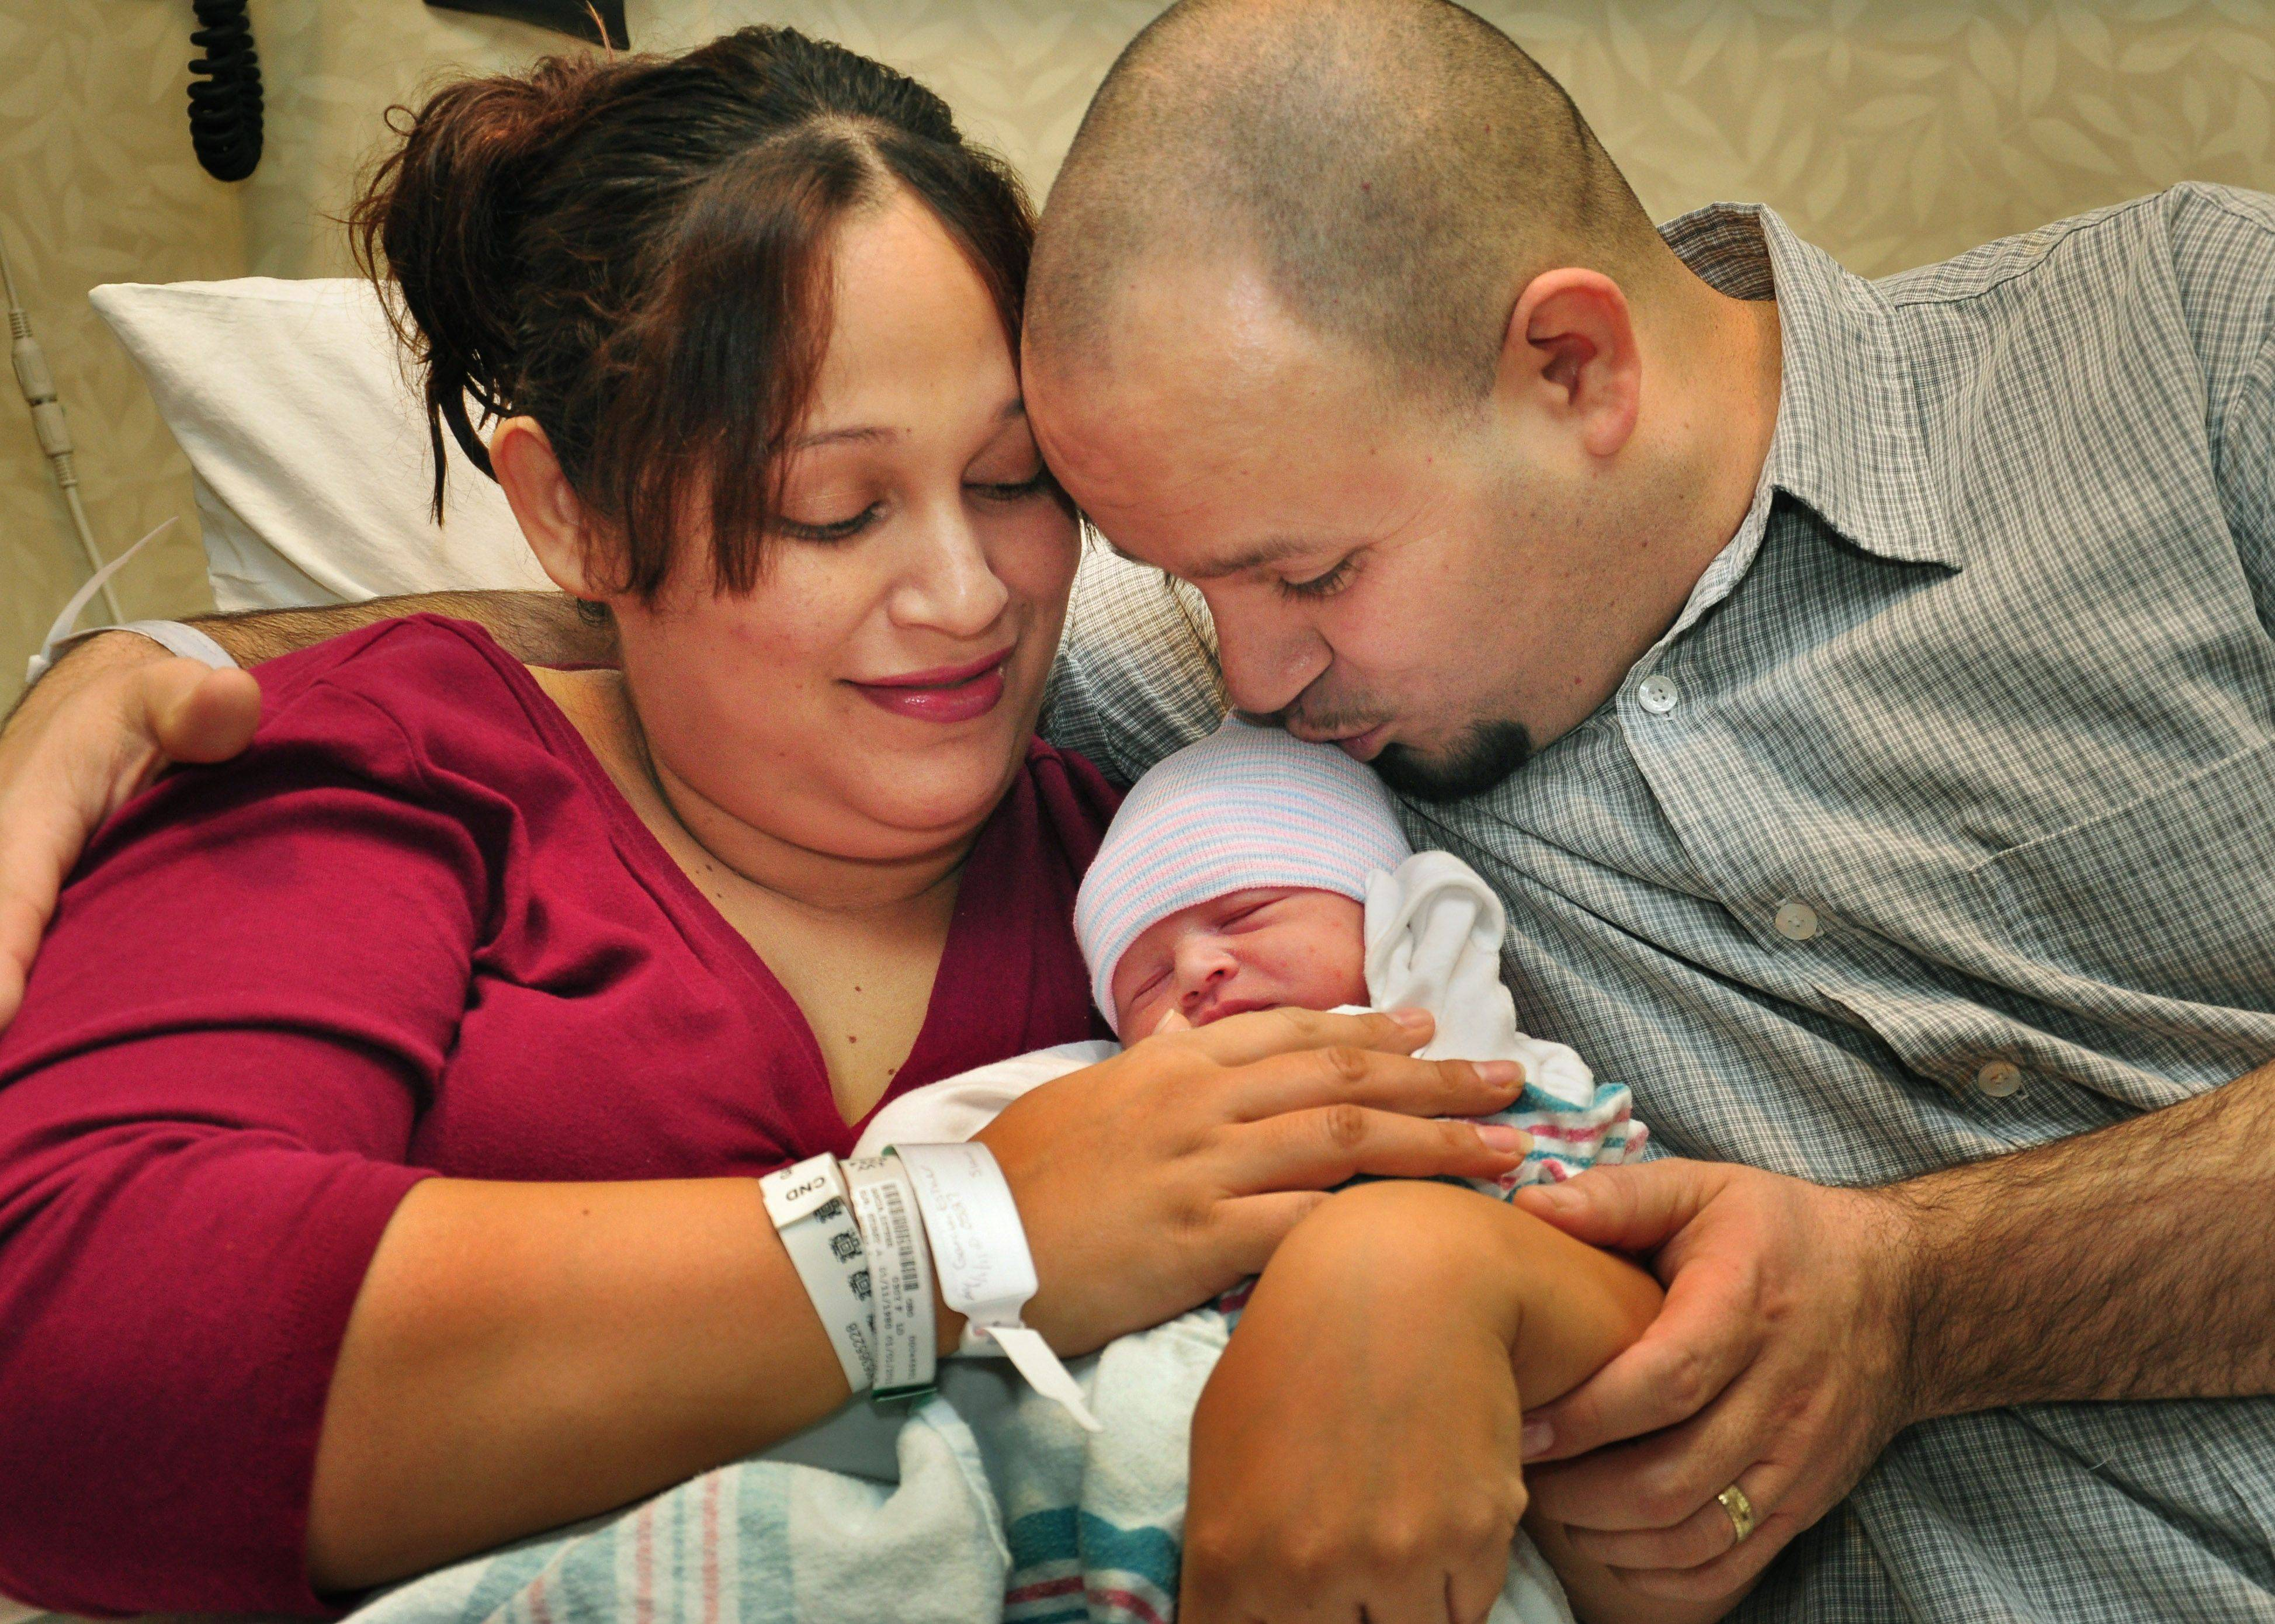 Lake County's first baby of 2011, Jakob Garcia was born at 5:27am. He weighed 7lbs 11 oz and was 20.5 inches long. Parents are Esther and Javier Garcia of Round Lake.